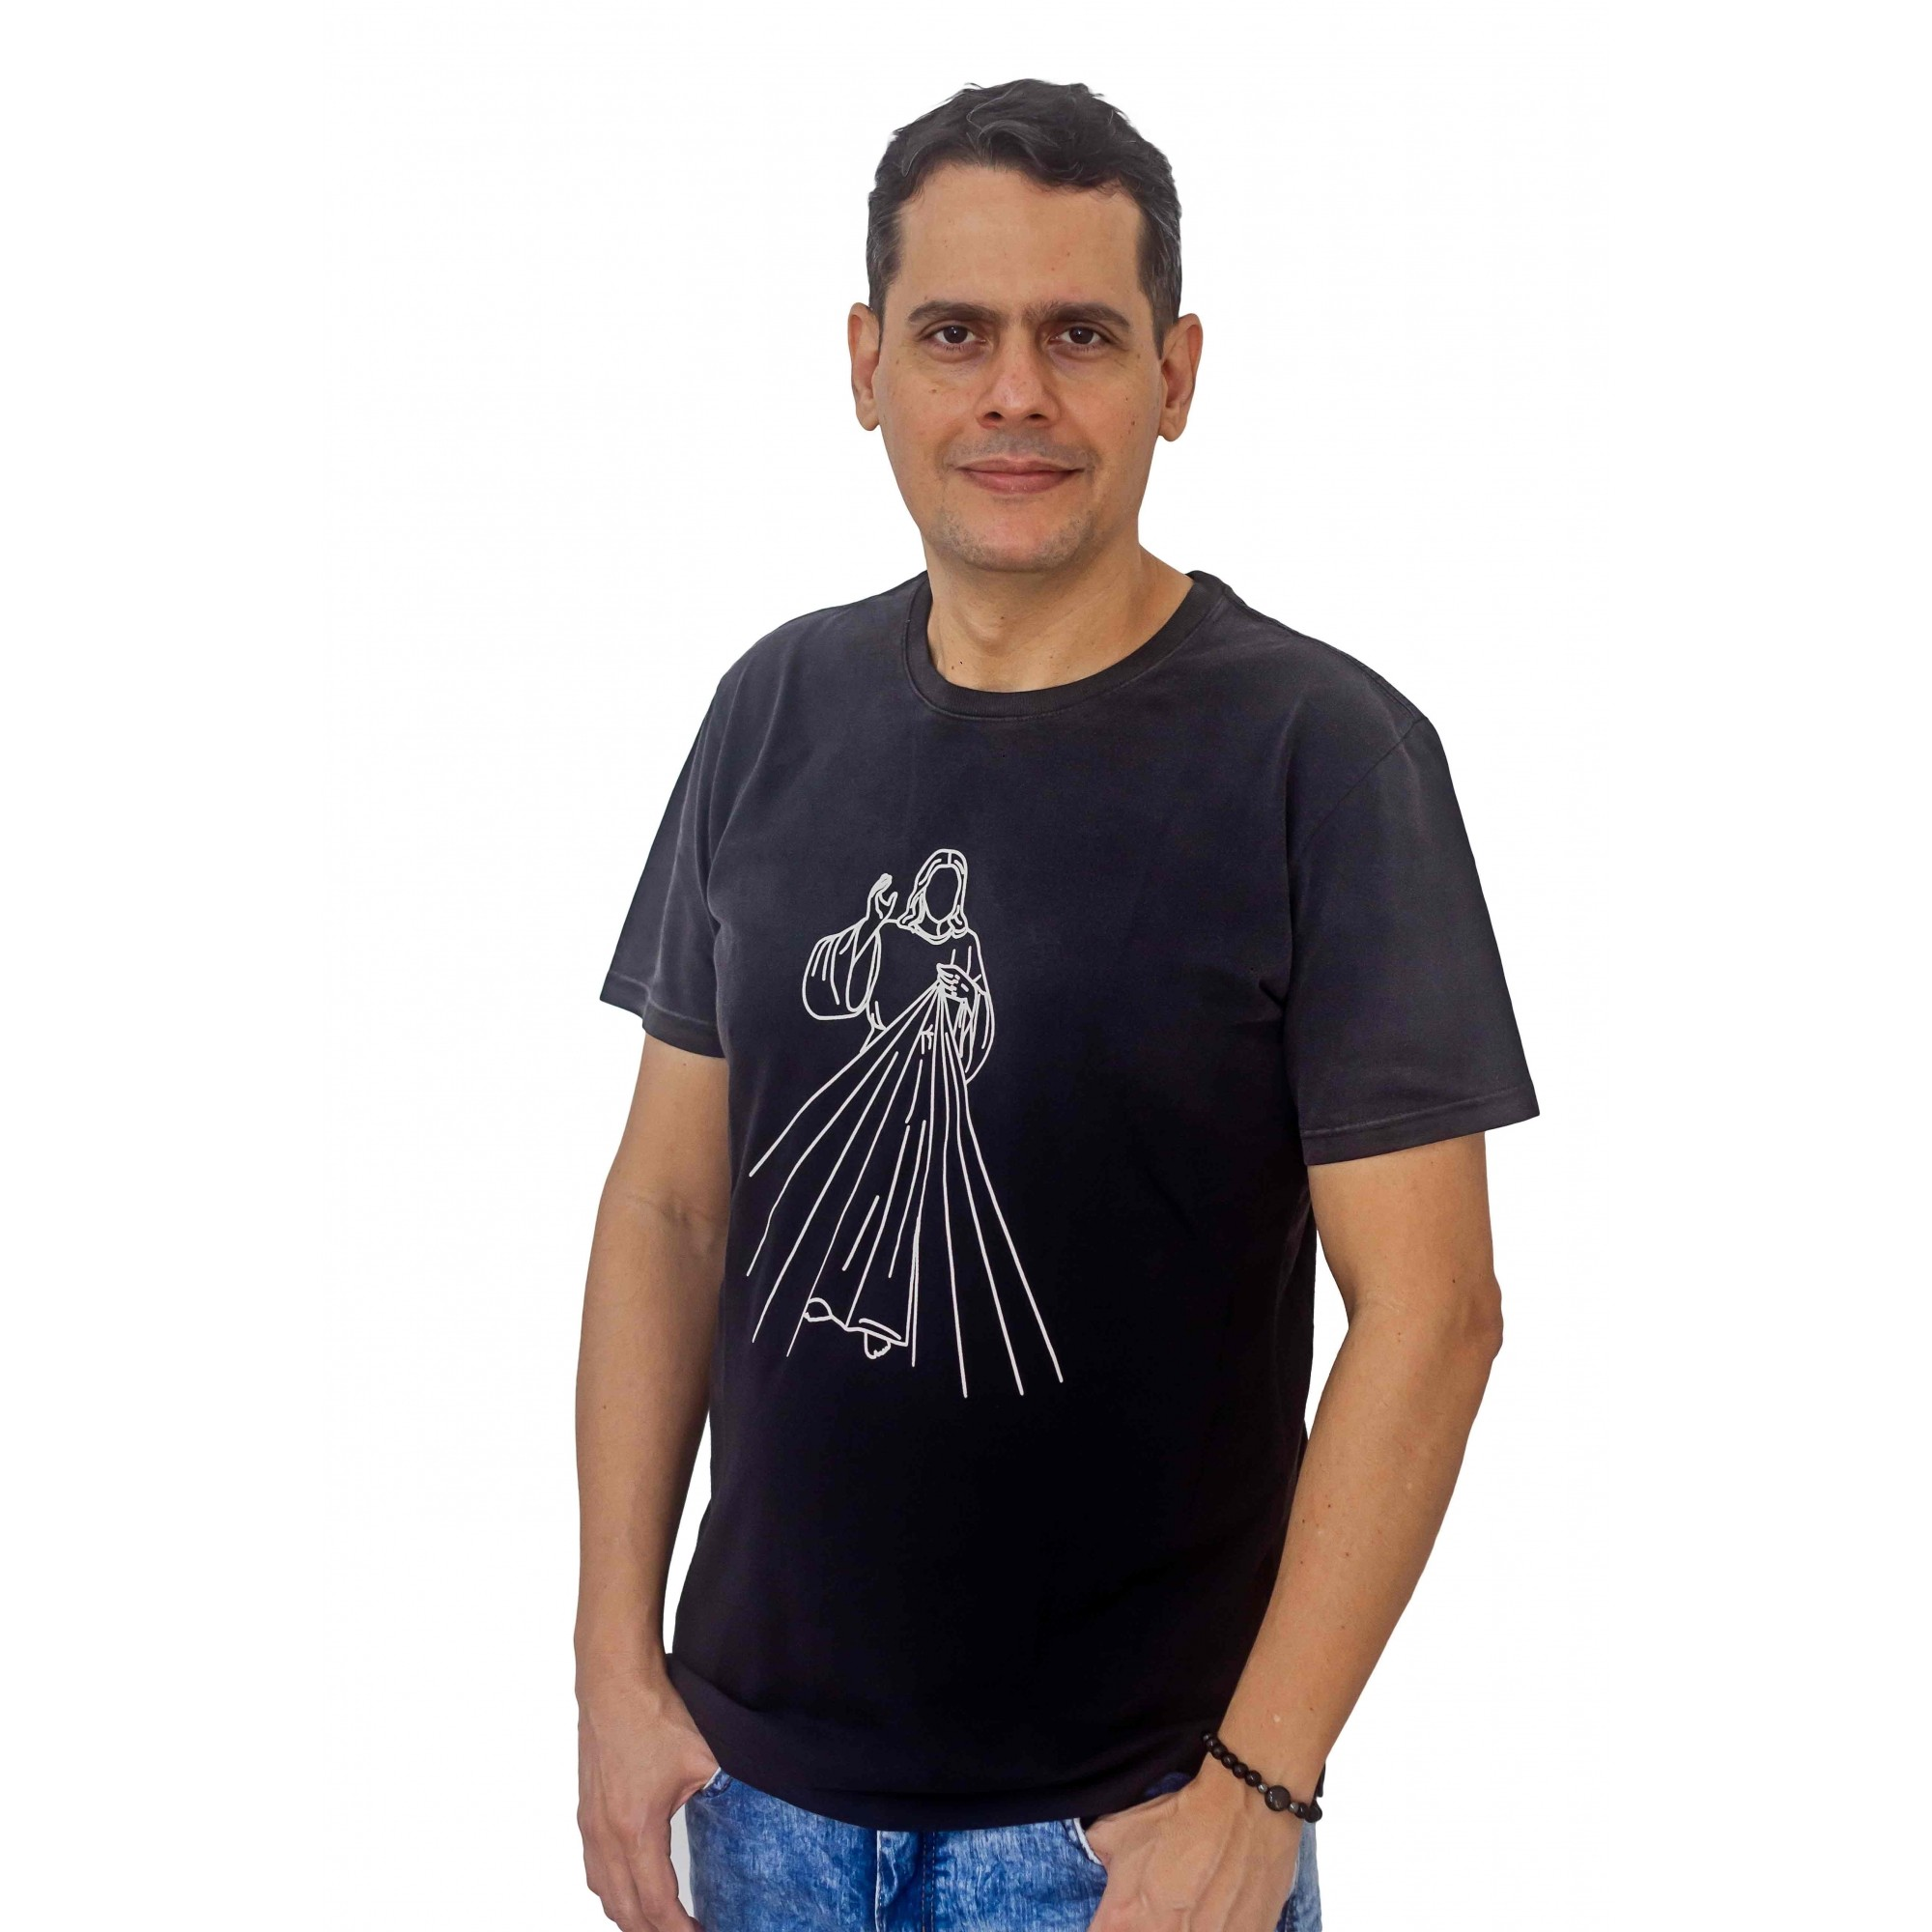 CAMISETA MASCULINA JESUS MISERICORDIOSO PRETA USED DEGRADÊ